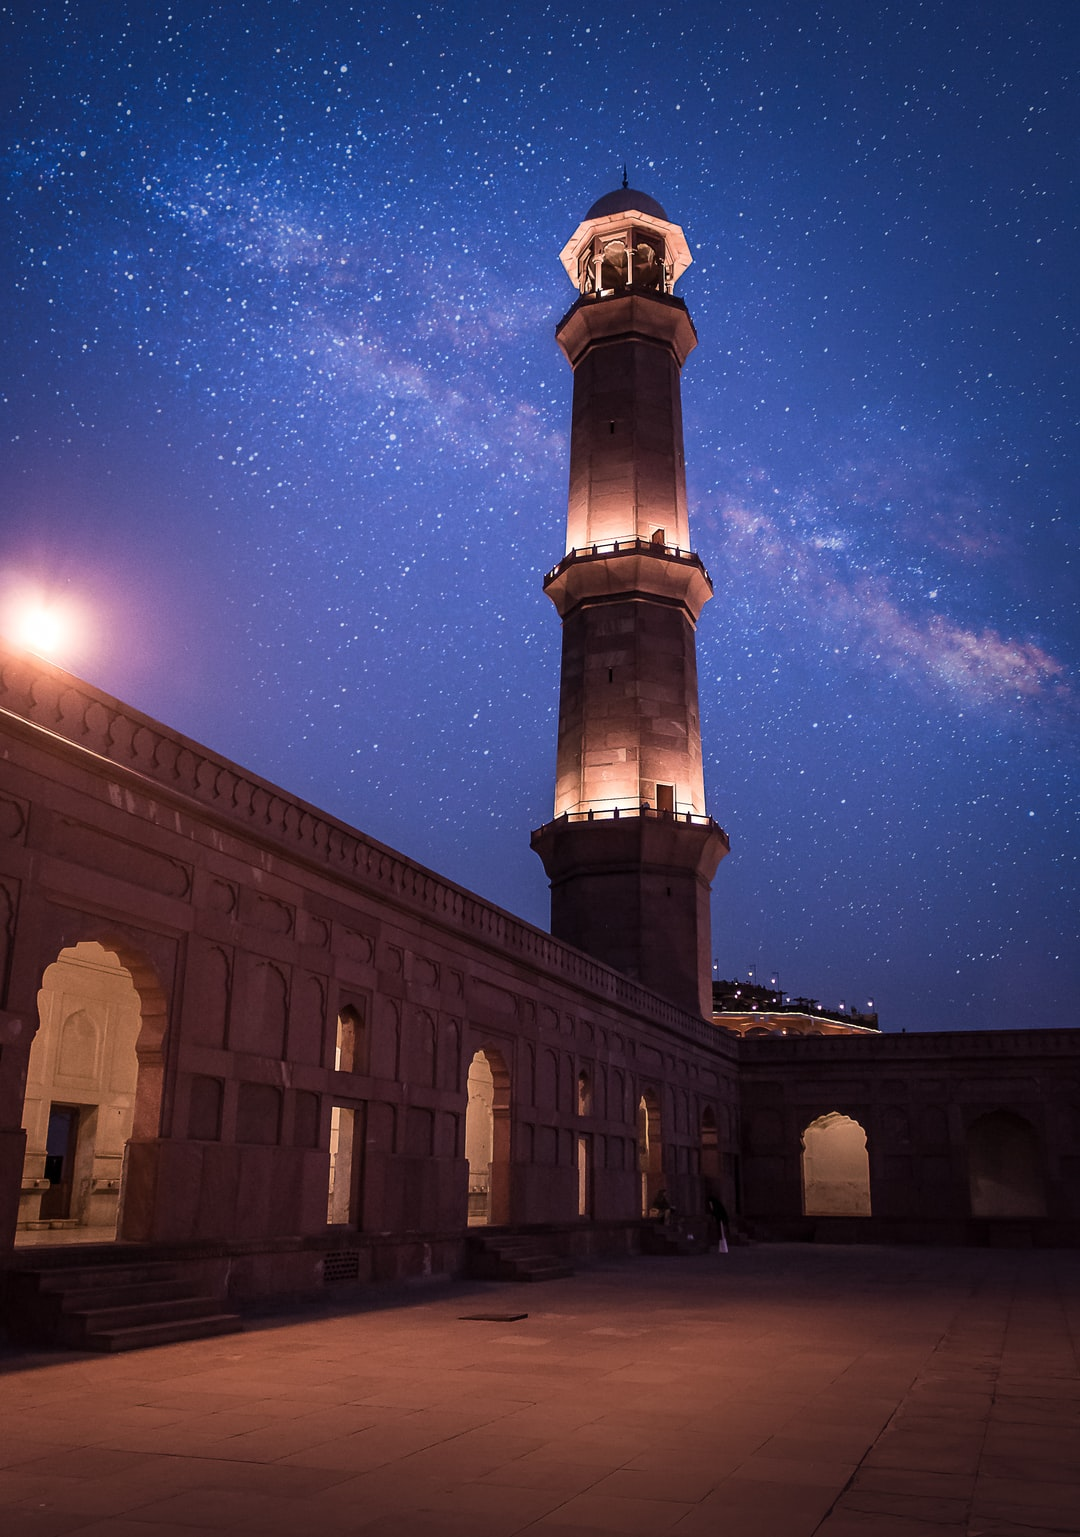 500 Badshahi Mosque Lahore Pakistan Pictures Hd